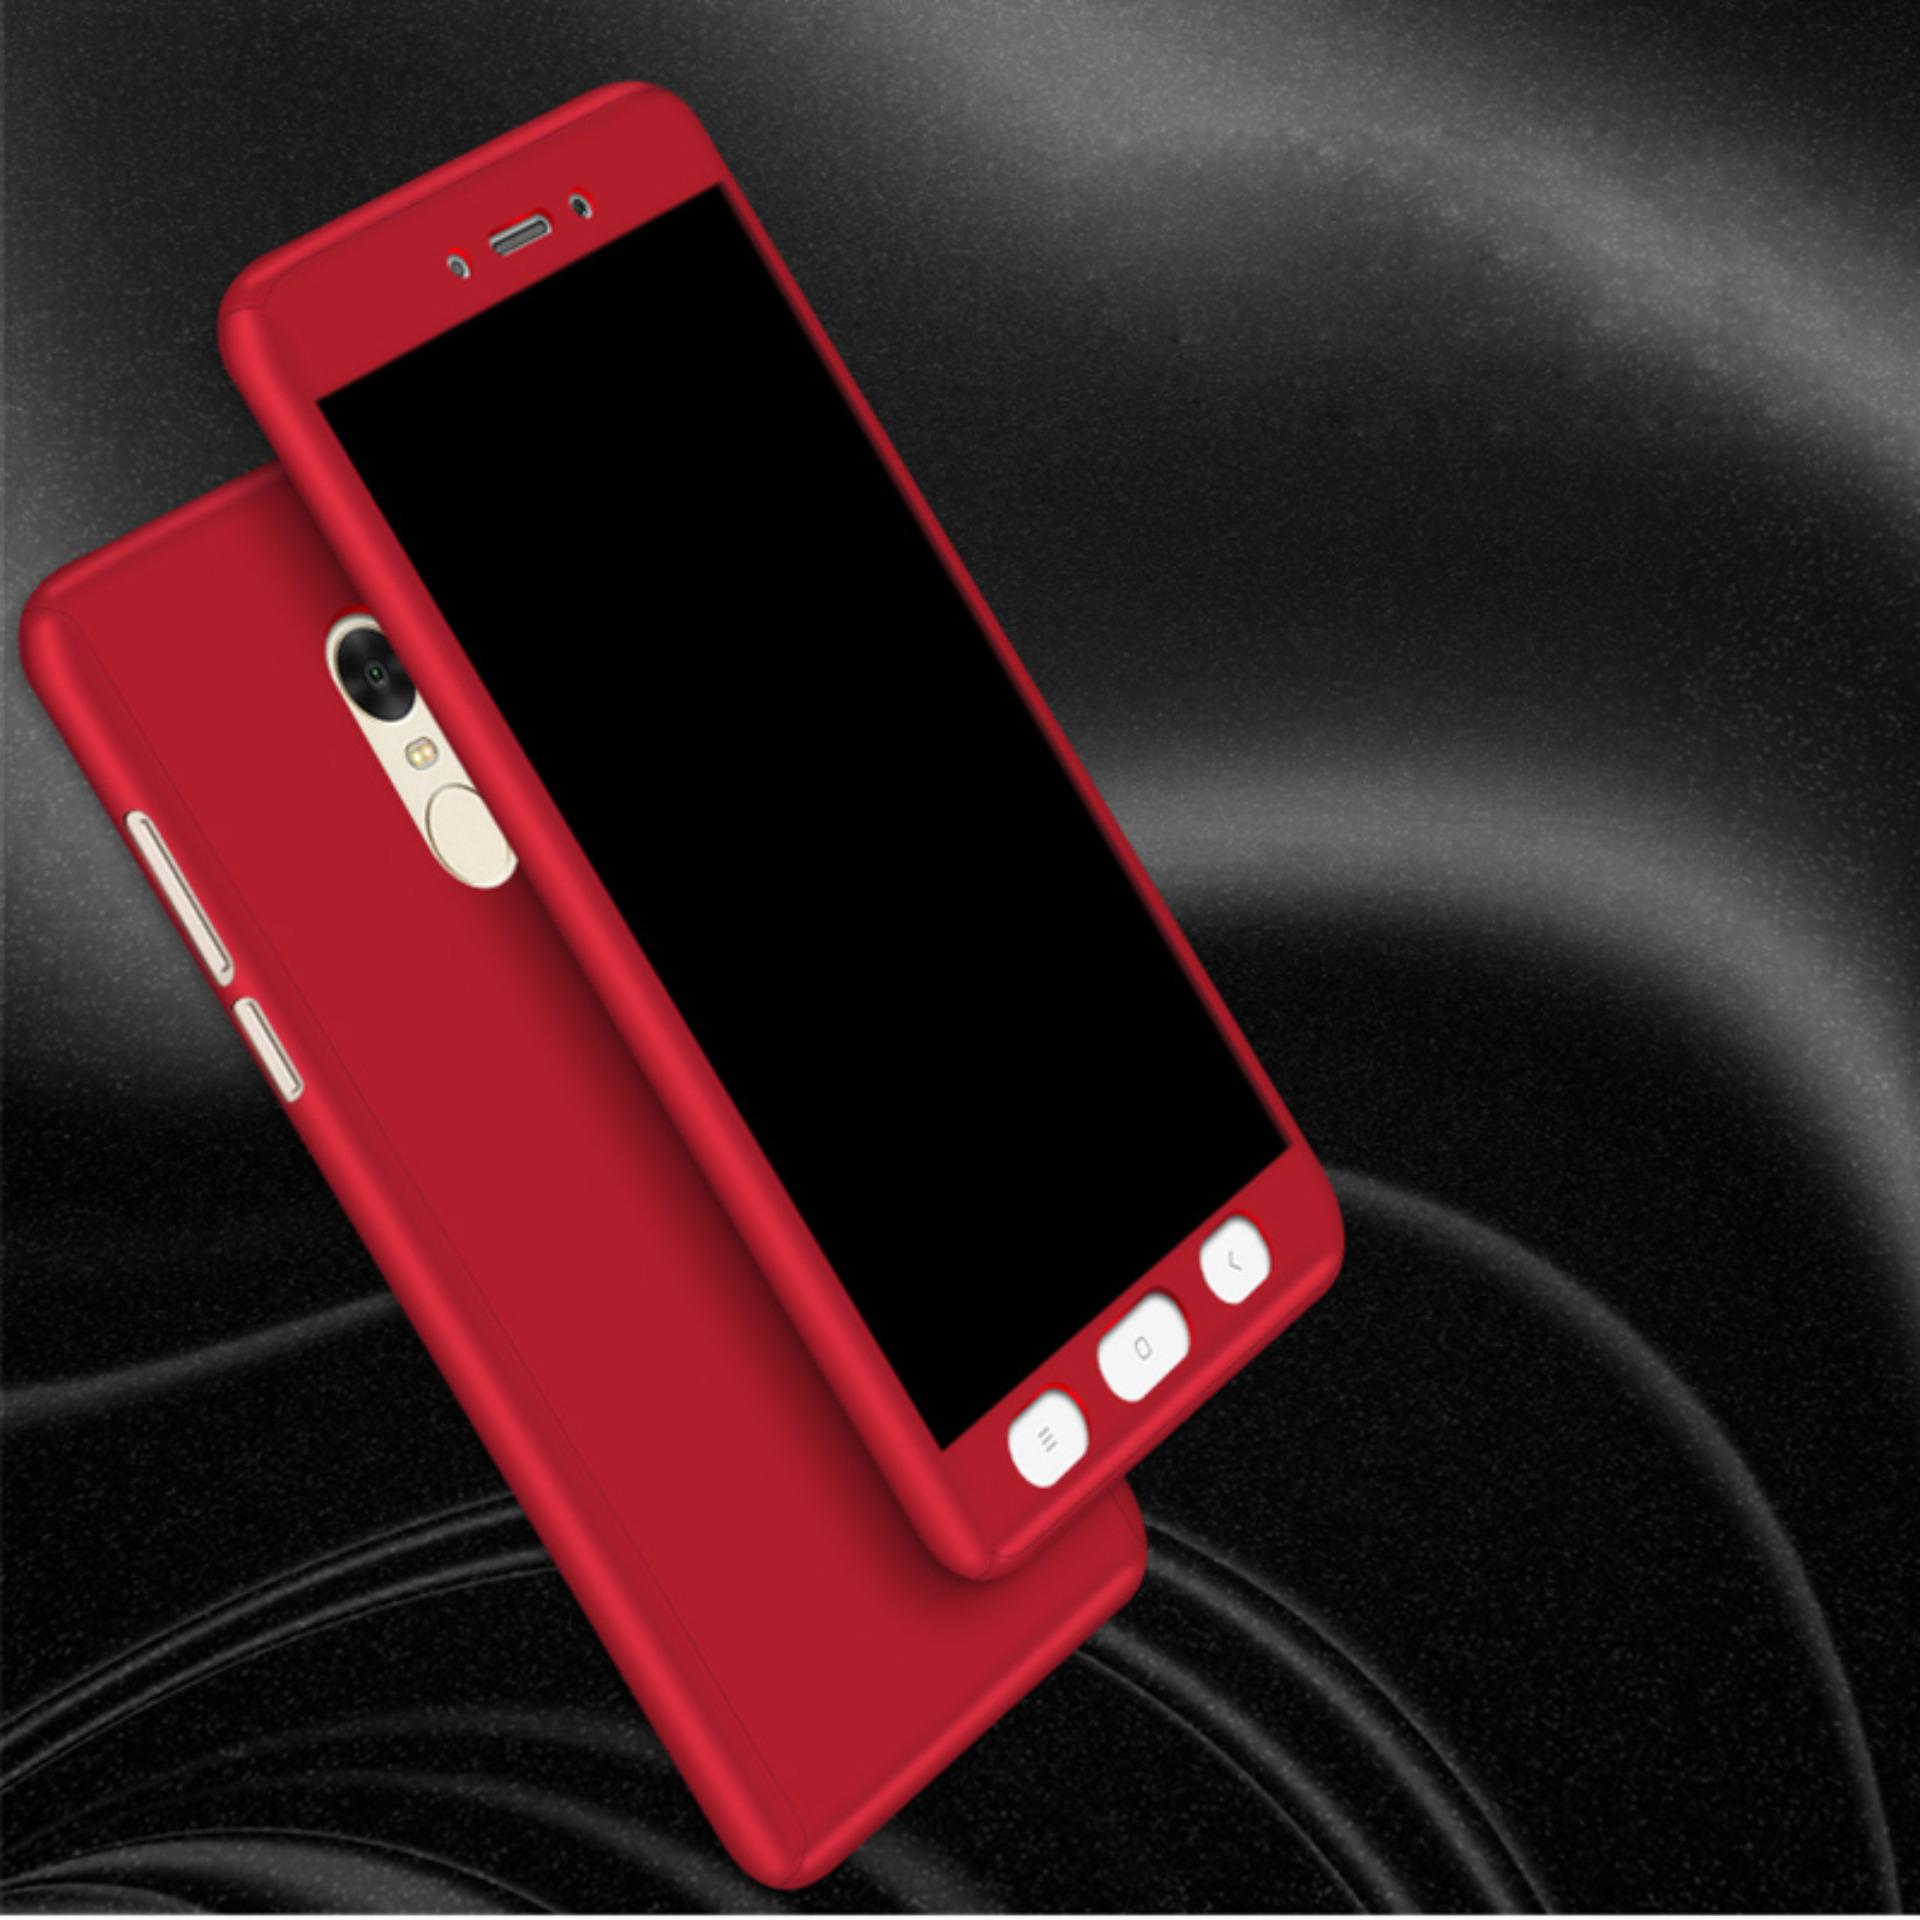 TERBAIK Hardcase Casing Full Body 360 Free Tempered Glass Xiaomi Redmi Note 4 / 4X /